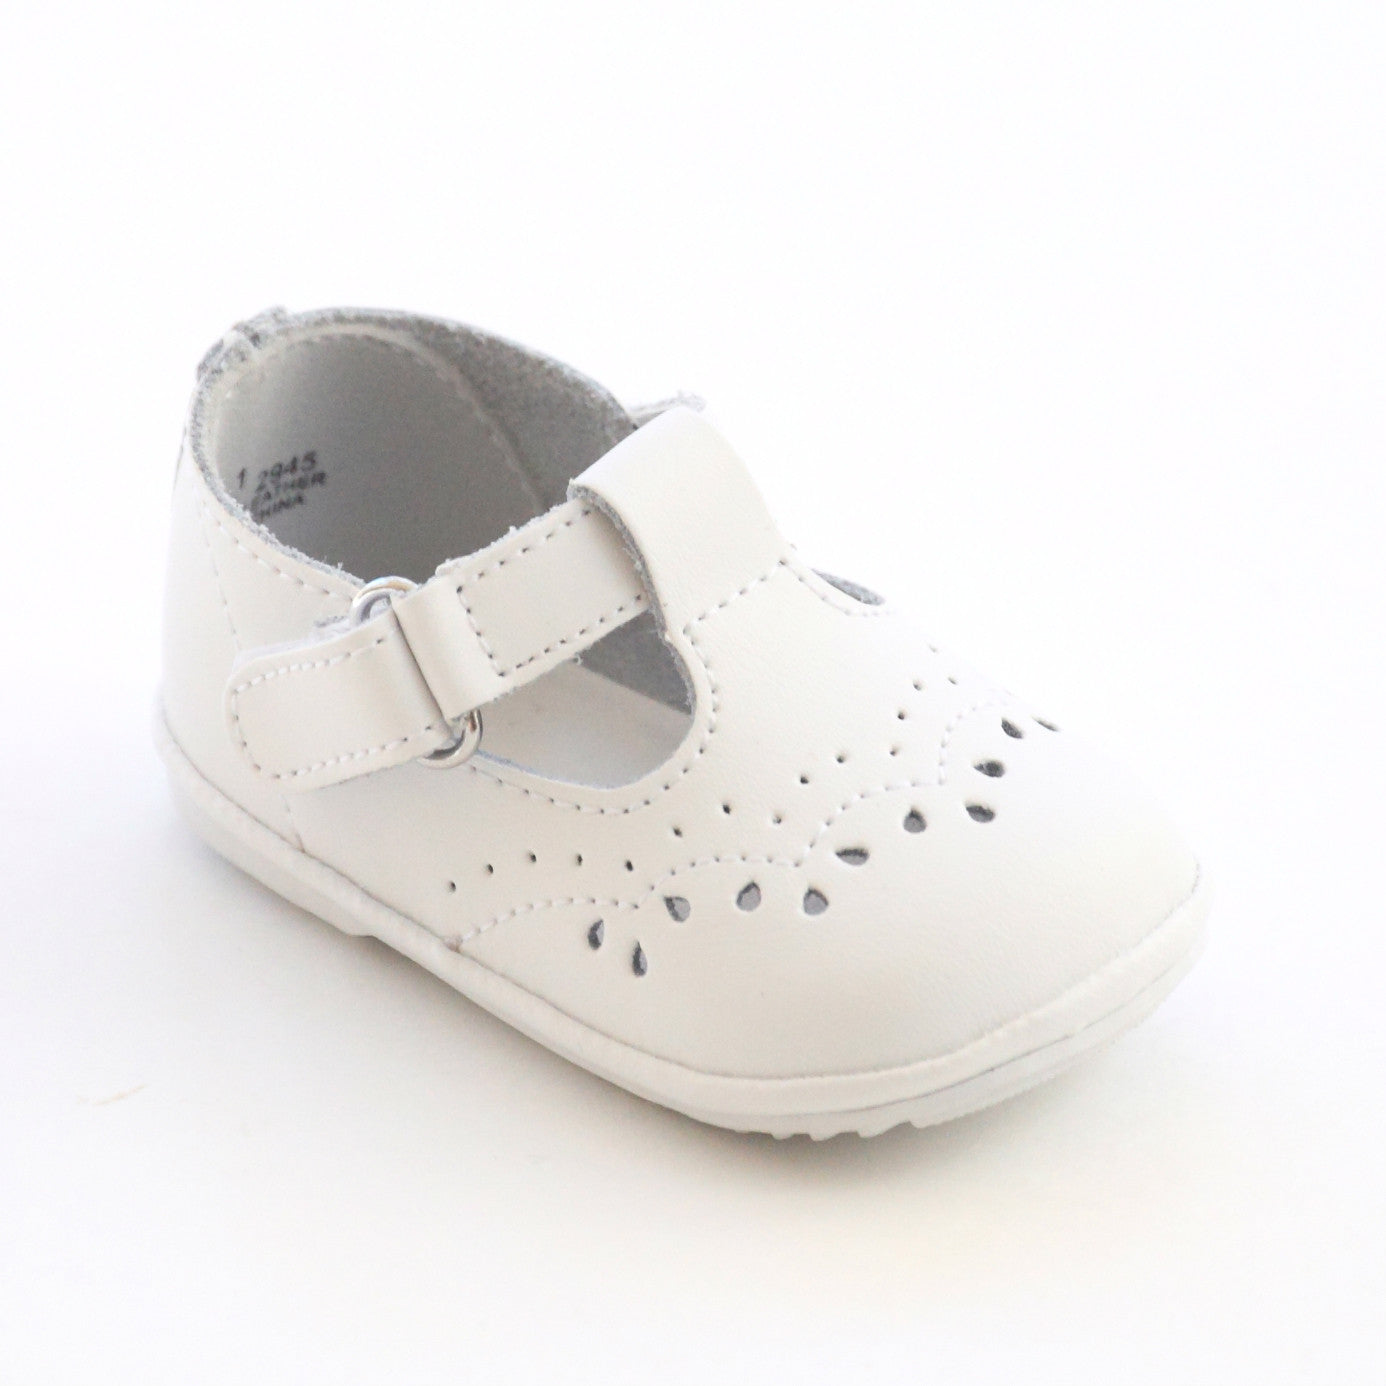 5c7ecf47af203 Baby Christening Shoes and Baby Baptism Shoes – Babychelle